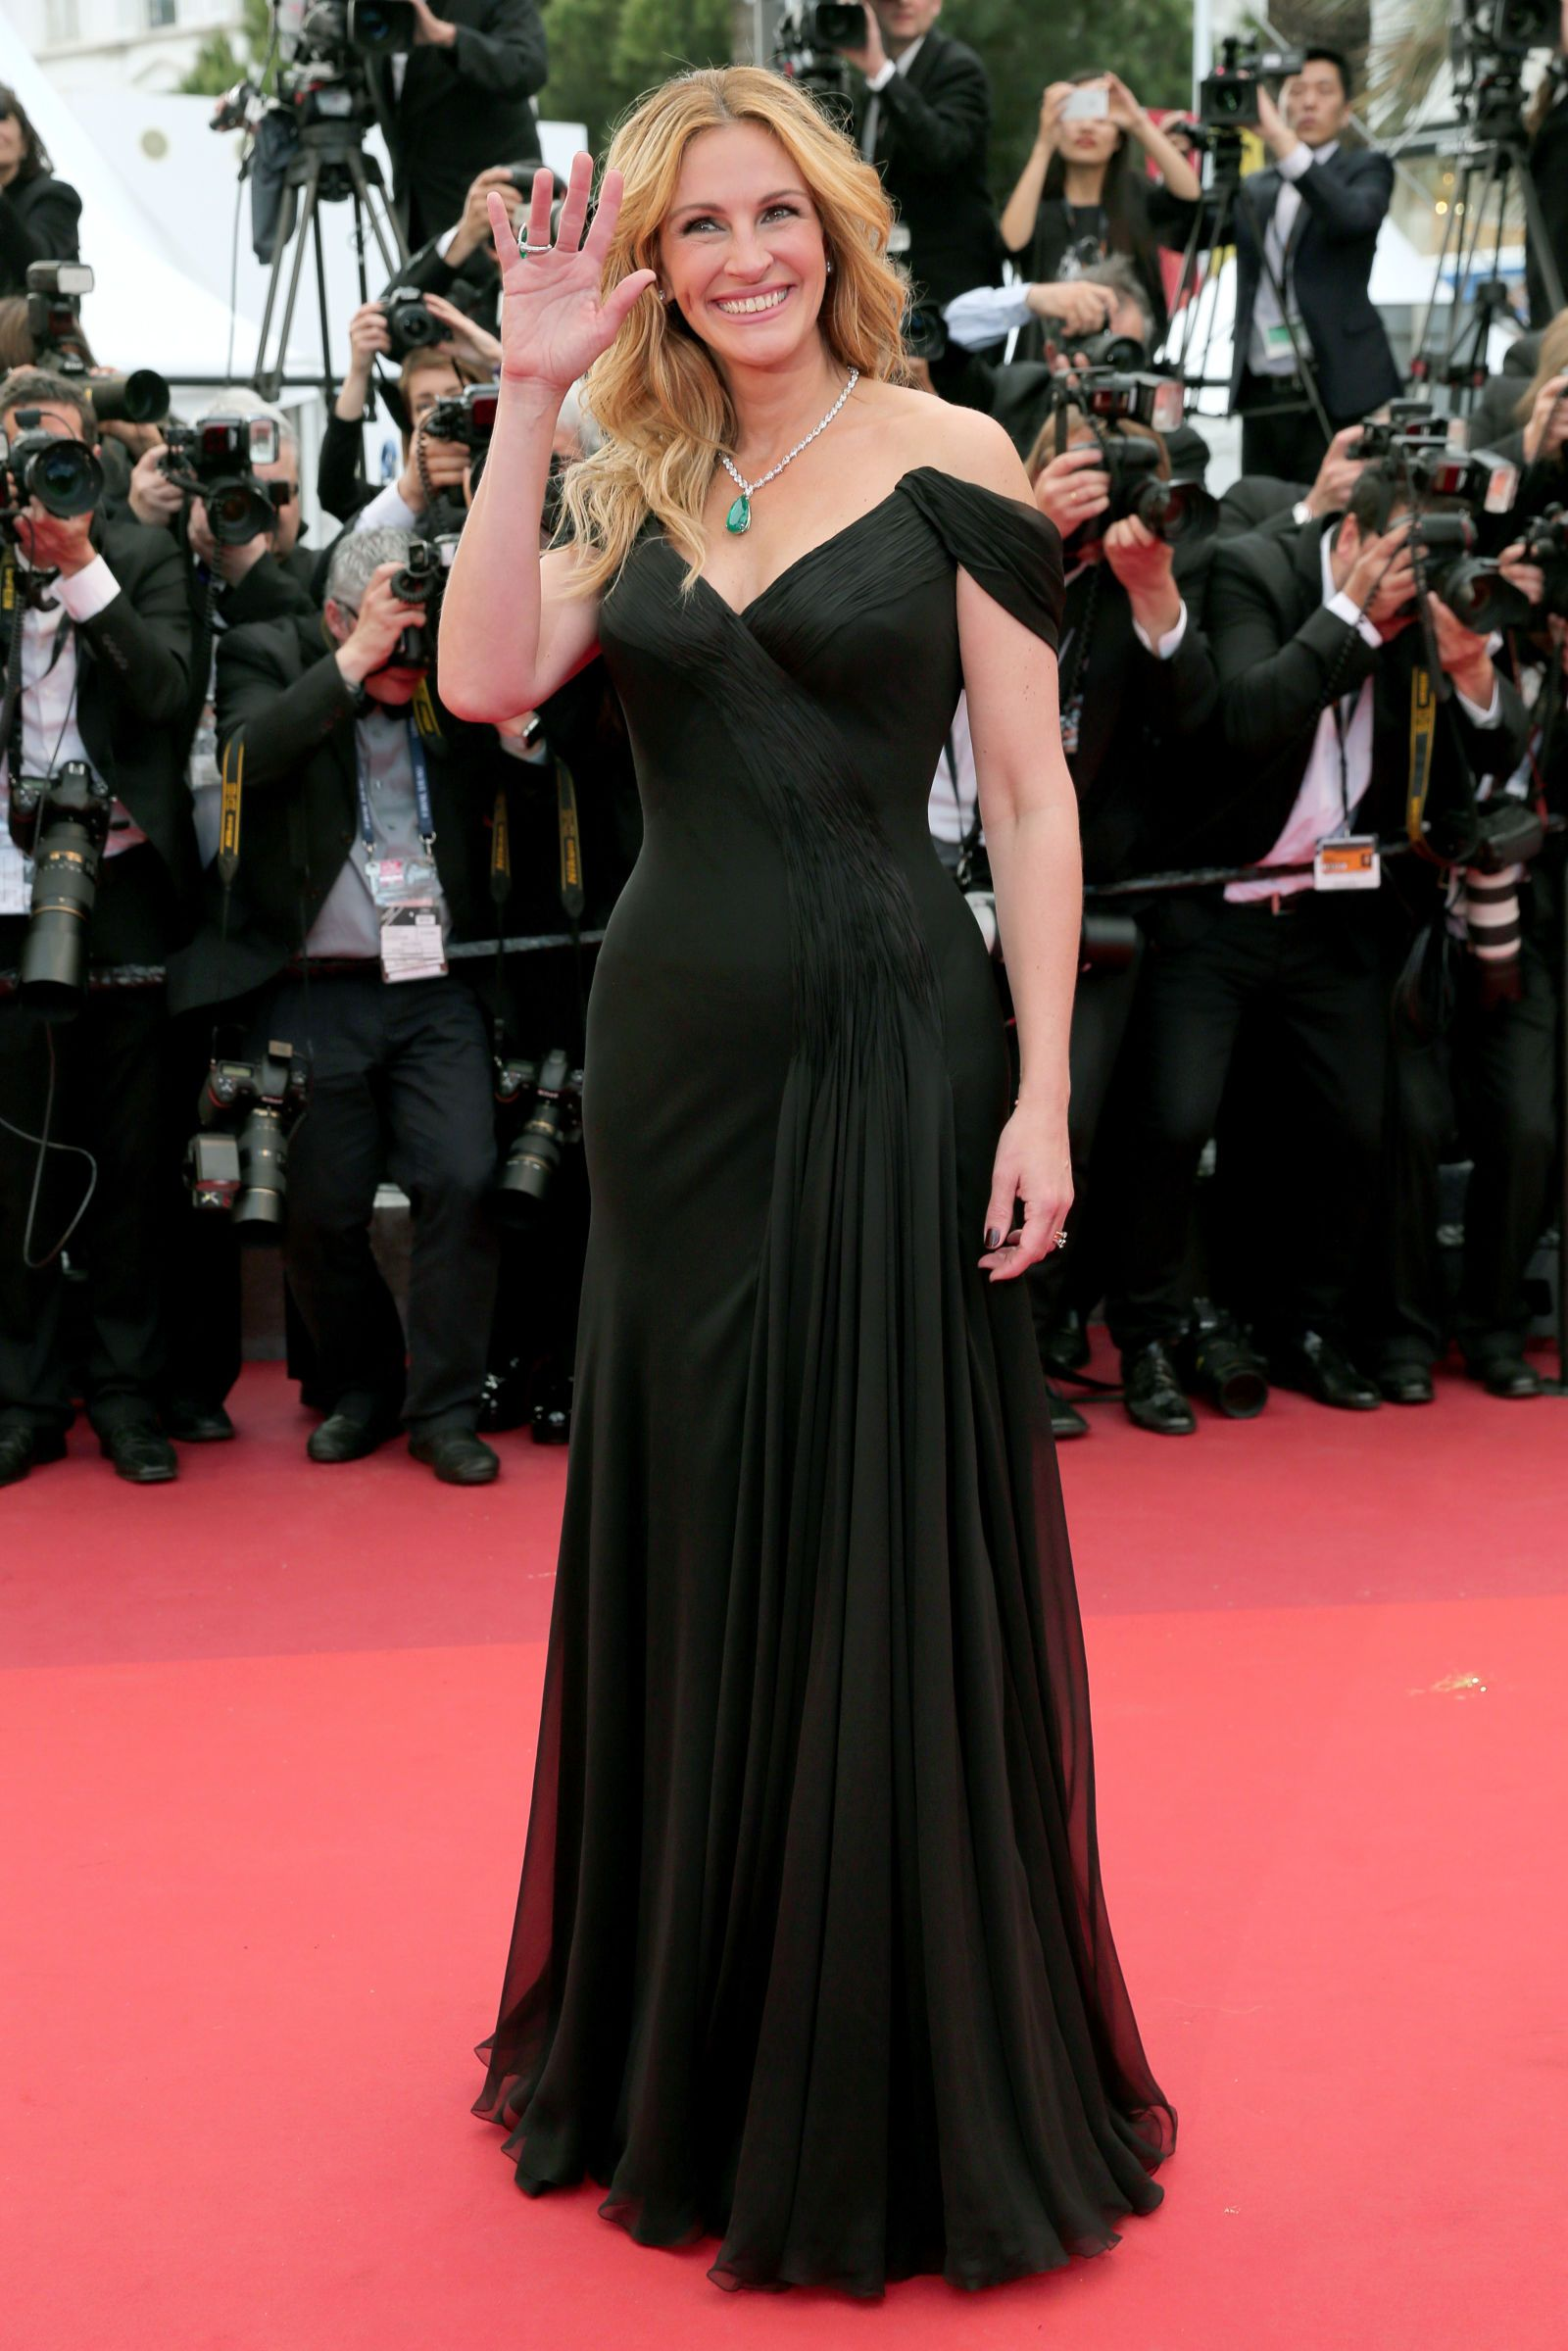 Cannes Film Festival Comes To A Close Relive The Best Red Carpet Moments Celebrity Style Red Carpet Celebrity Style Red Carpet Looks [ 2399 x 1600 Pixel ]